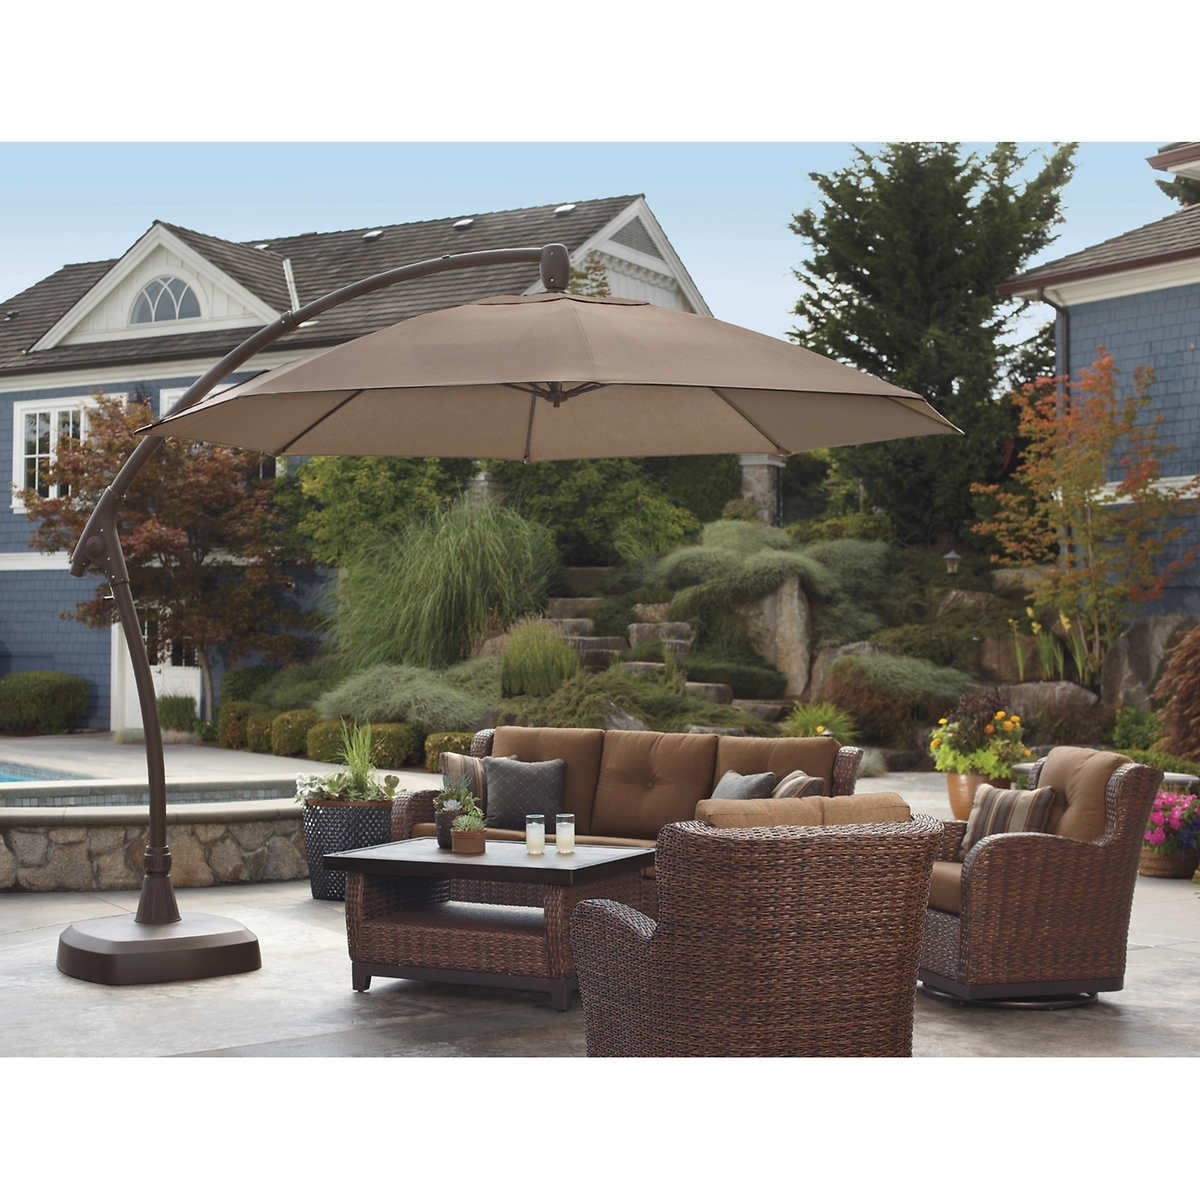 Sunbrella Patio Umbrellas At Costco For Most Recent Patio Umbrellas At Costco Canada – Patio Ideas (View 4 of 20)